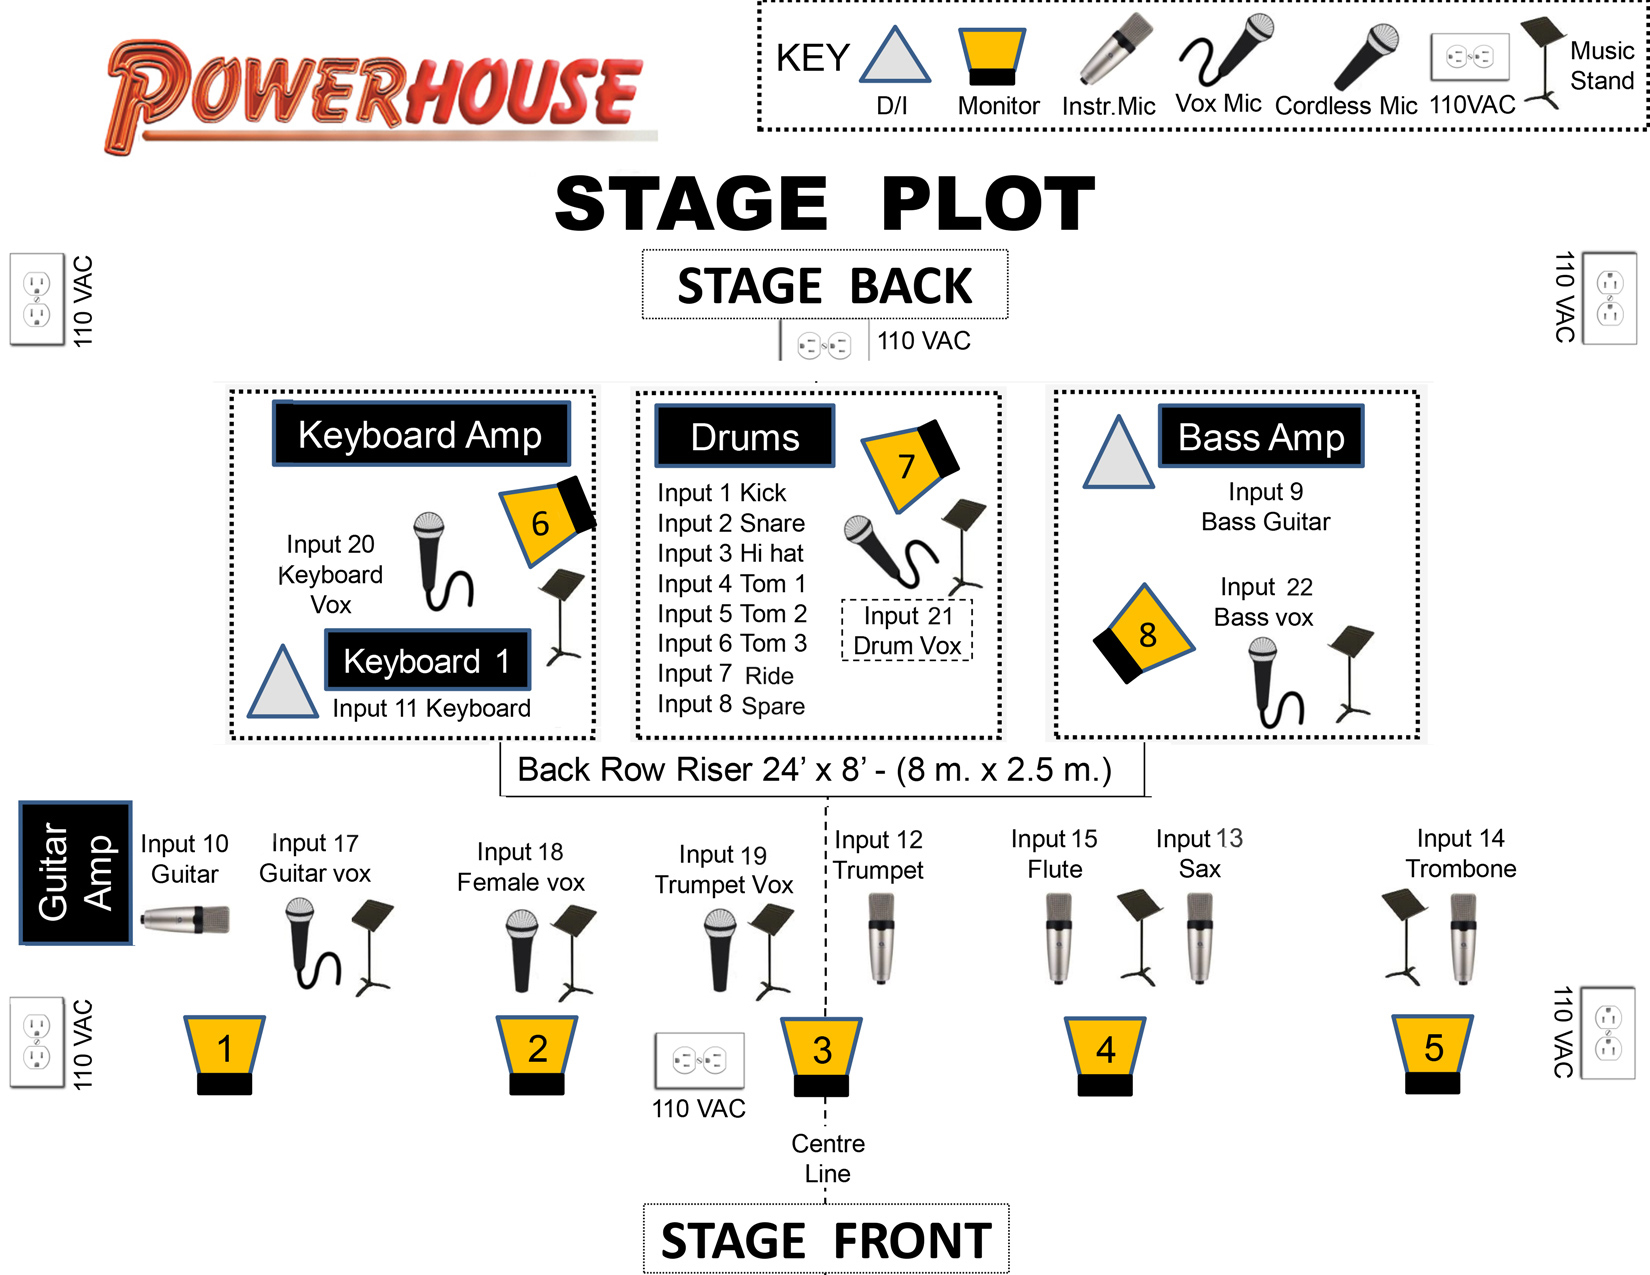 Powerhouse Stage Plot 2019